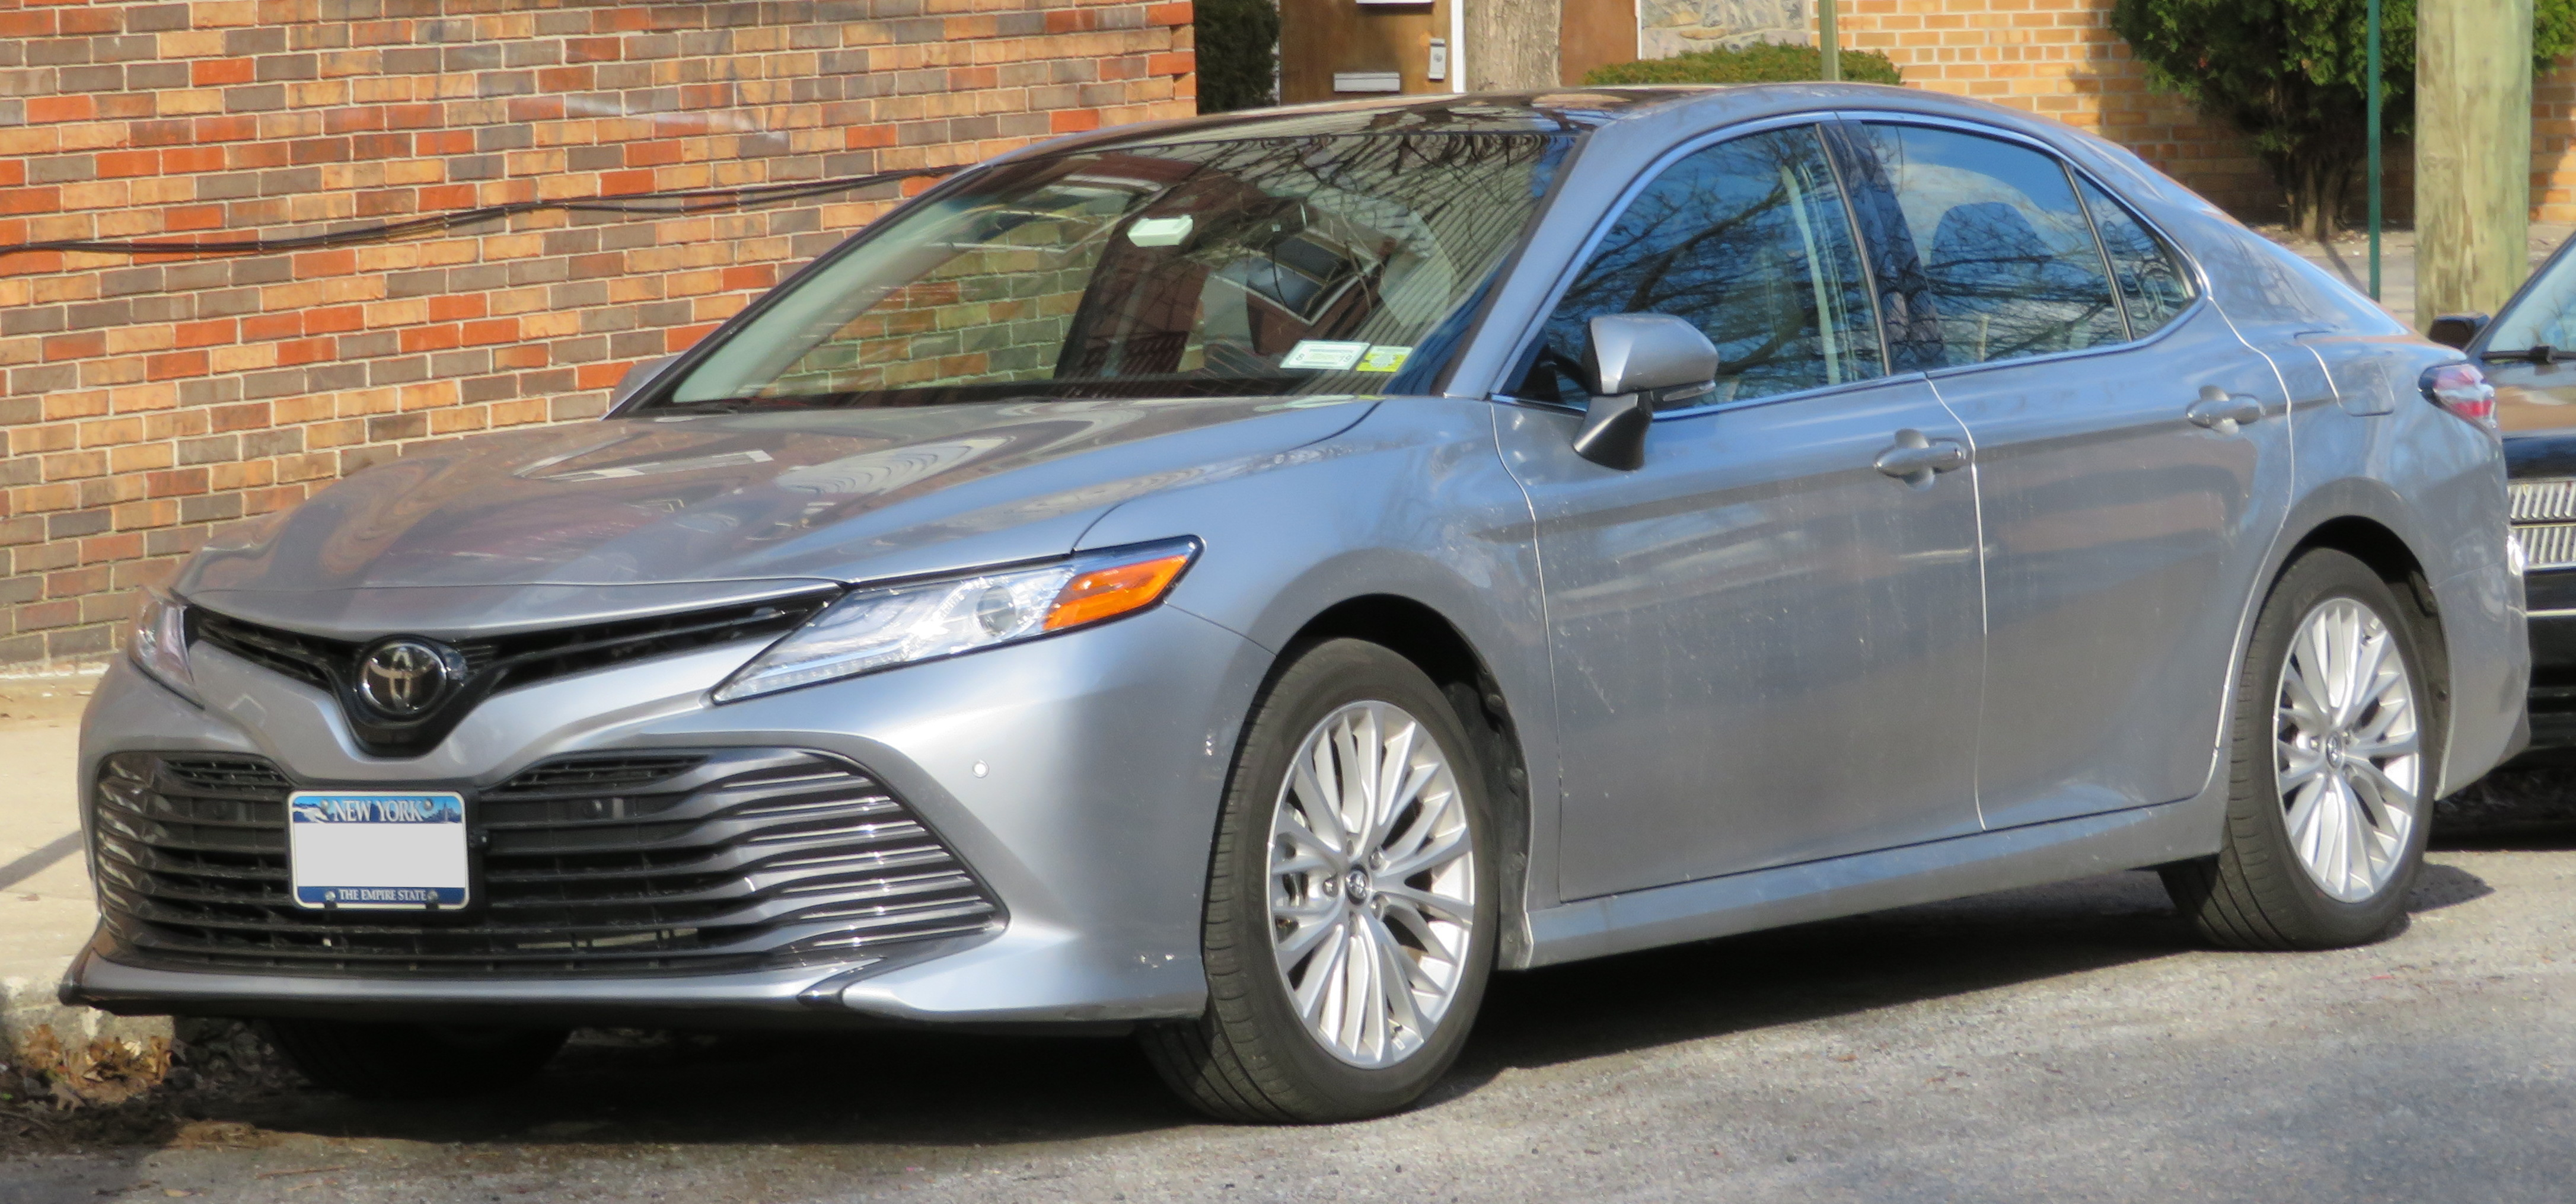 next previous new xlecelestial toyota xle heninger serving metallic ab silver camry in inventory calgary